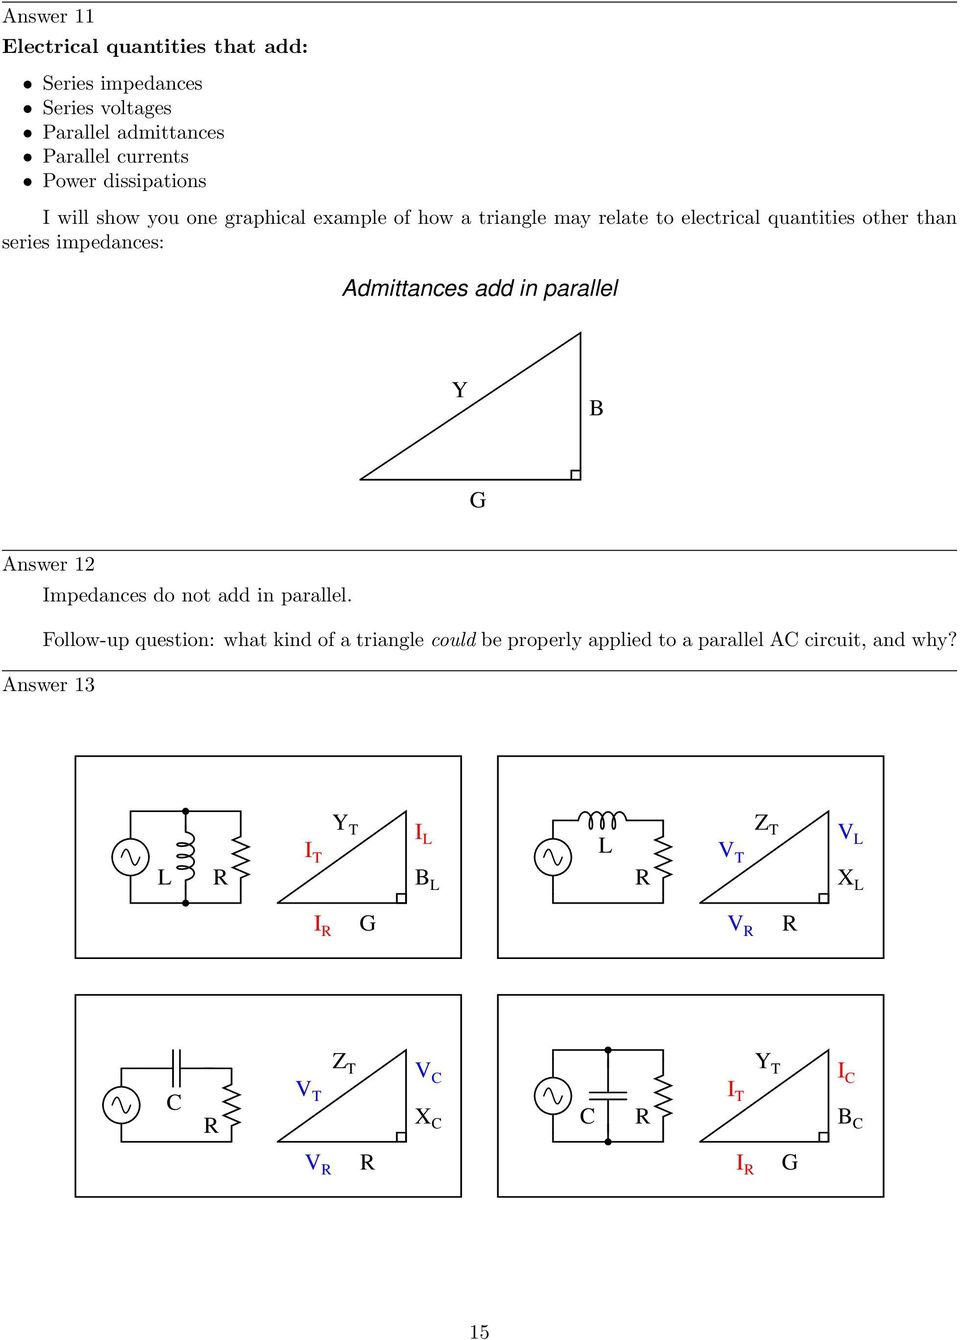 Trigonometry For Ac Circuits Pdf Circuit Dummies Impedances Admittances Add In Parallel Y B G Answer 12 Do Not